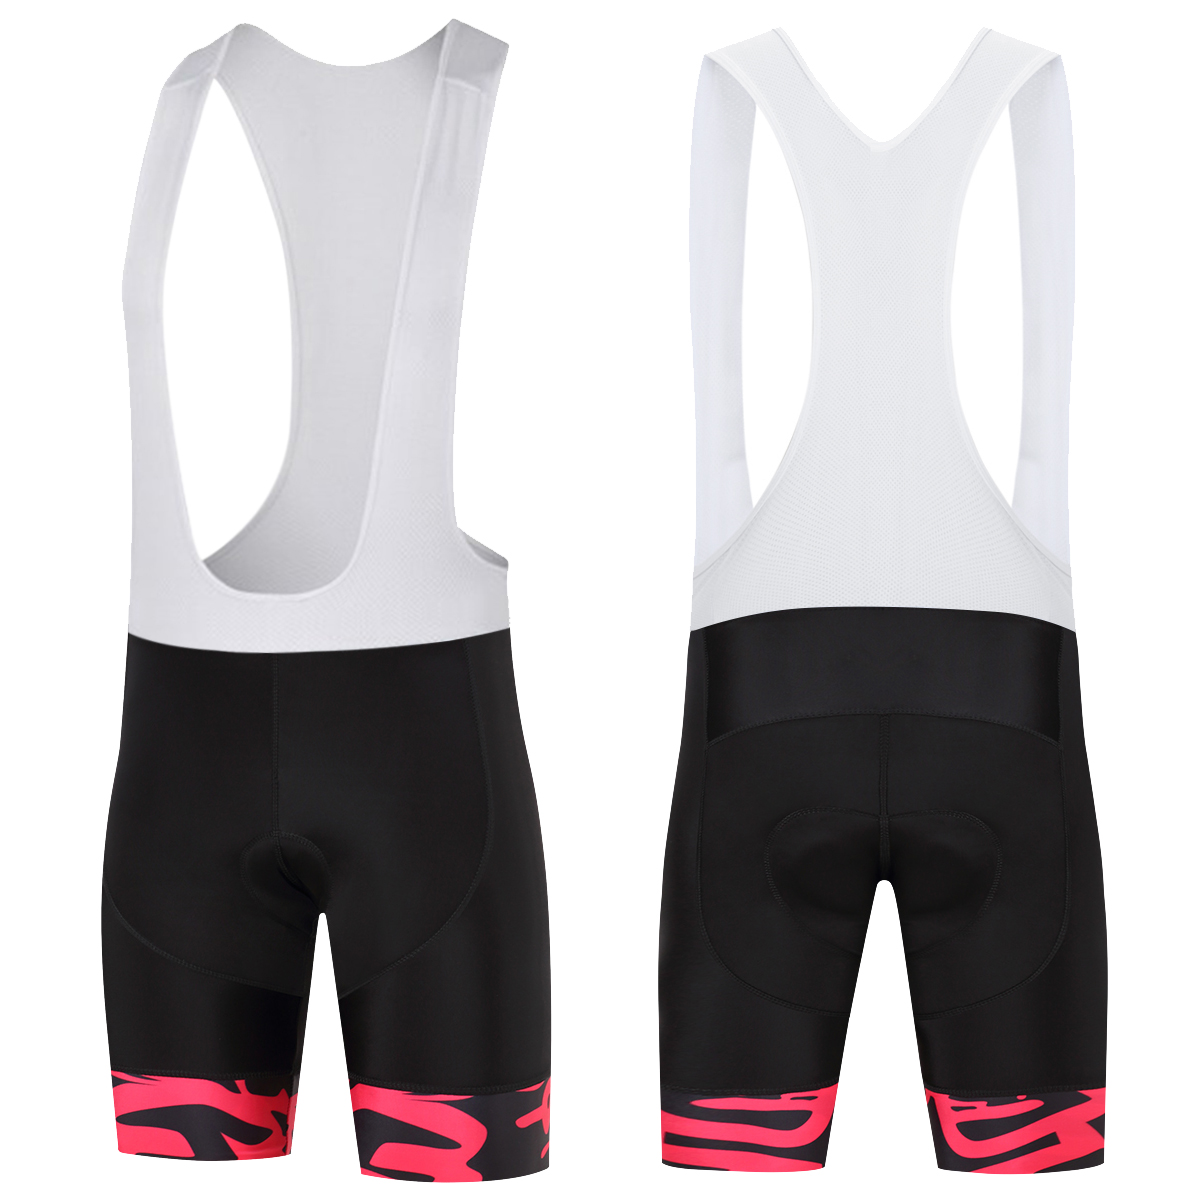 High quality 2018 Men's Cycling <font><b>Bib</b></font> <font><b>Shorts</b></font> summer Bicycle <font><b>Bib</b></font> <font><b>Short</b></font> Cycling pants 19D Padded Gel Breathable Quick drying image